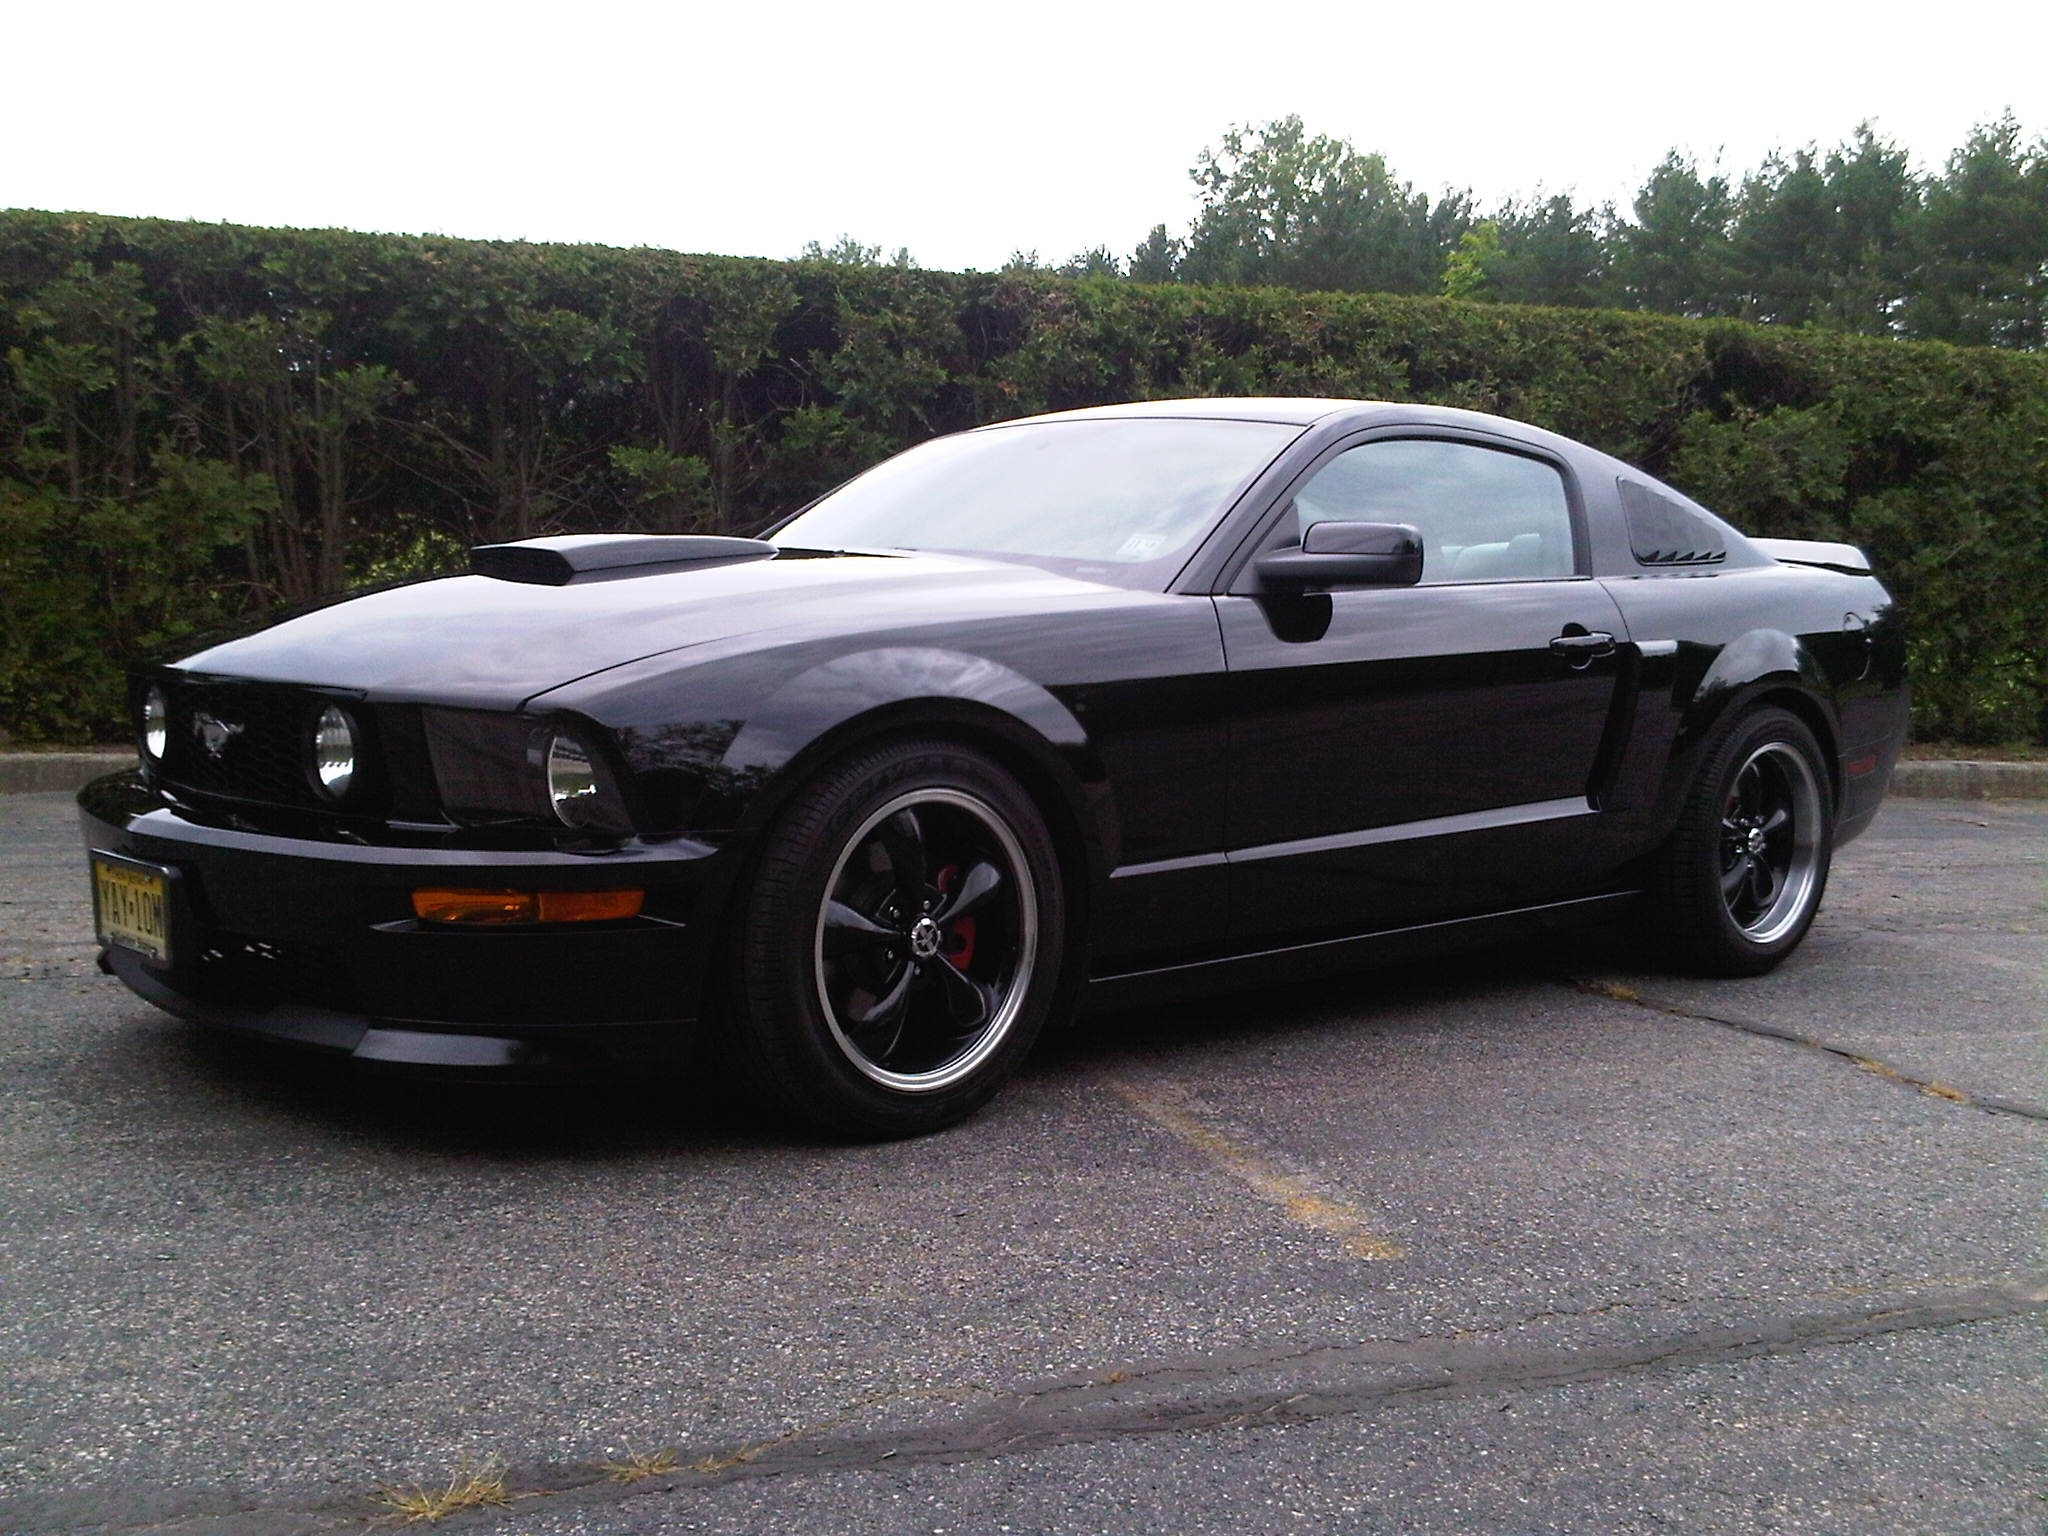 Runfeldtj 2007 Ford Mustanggt Deluxe Coupe 2d Specs